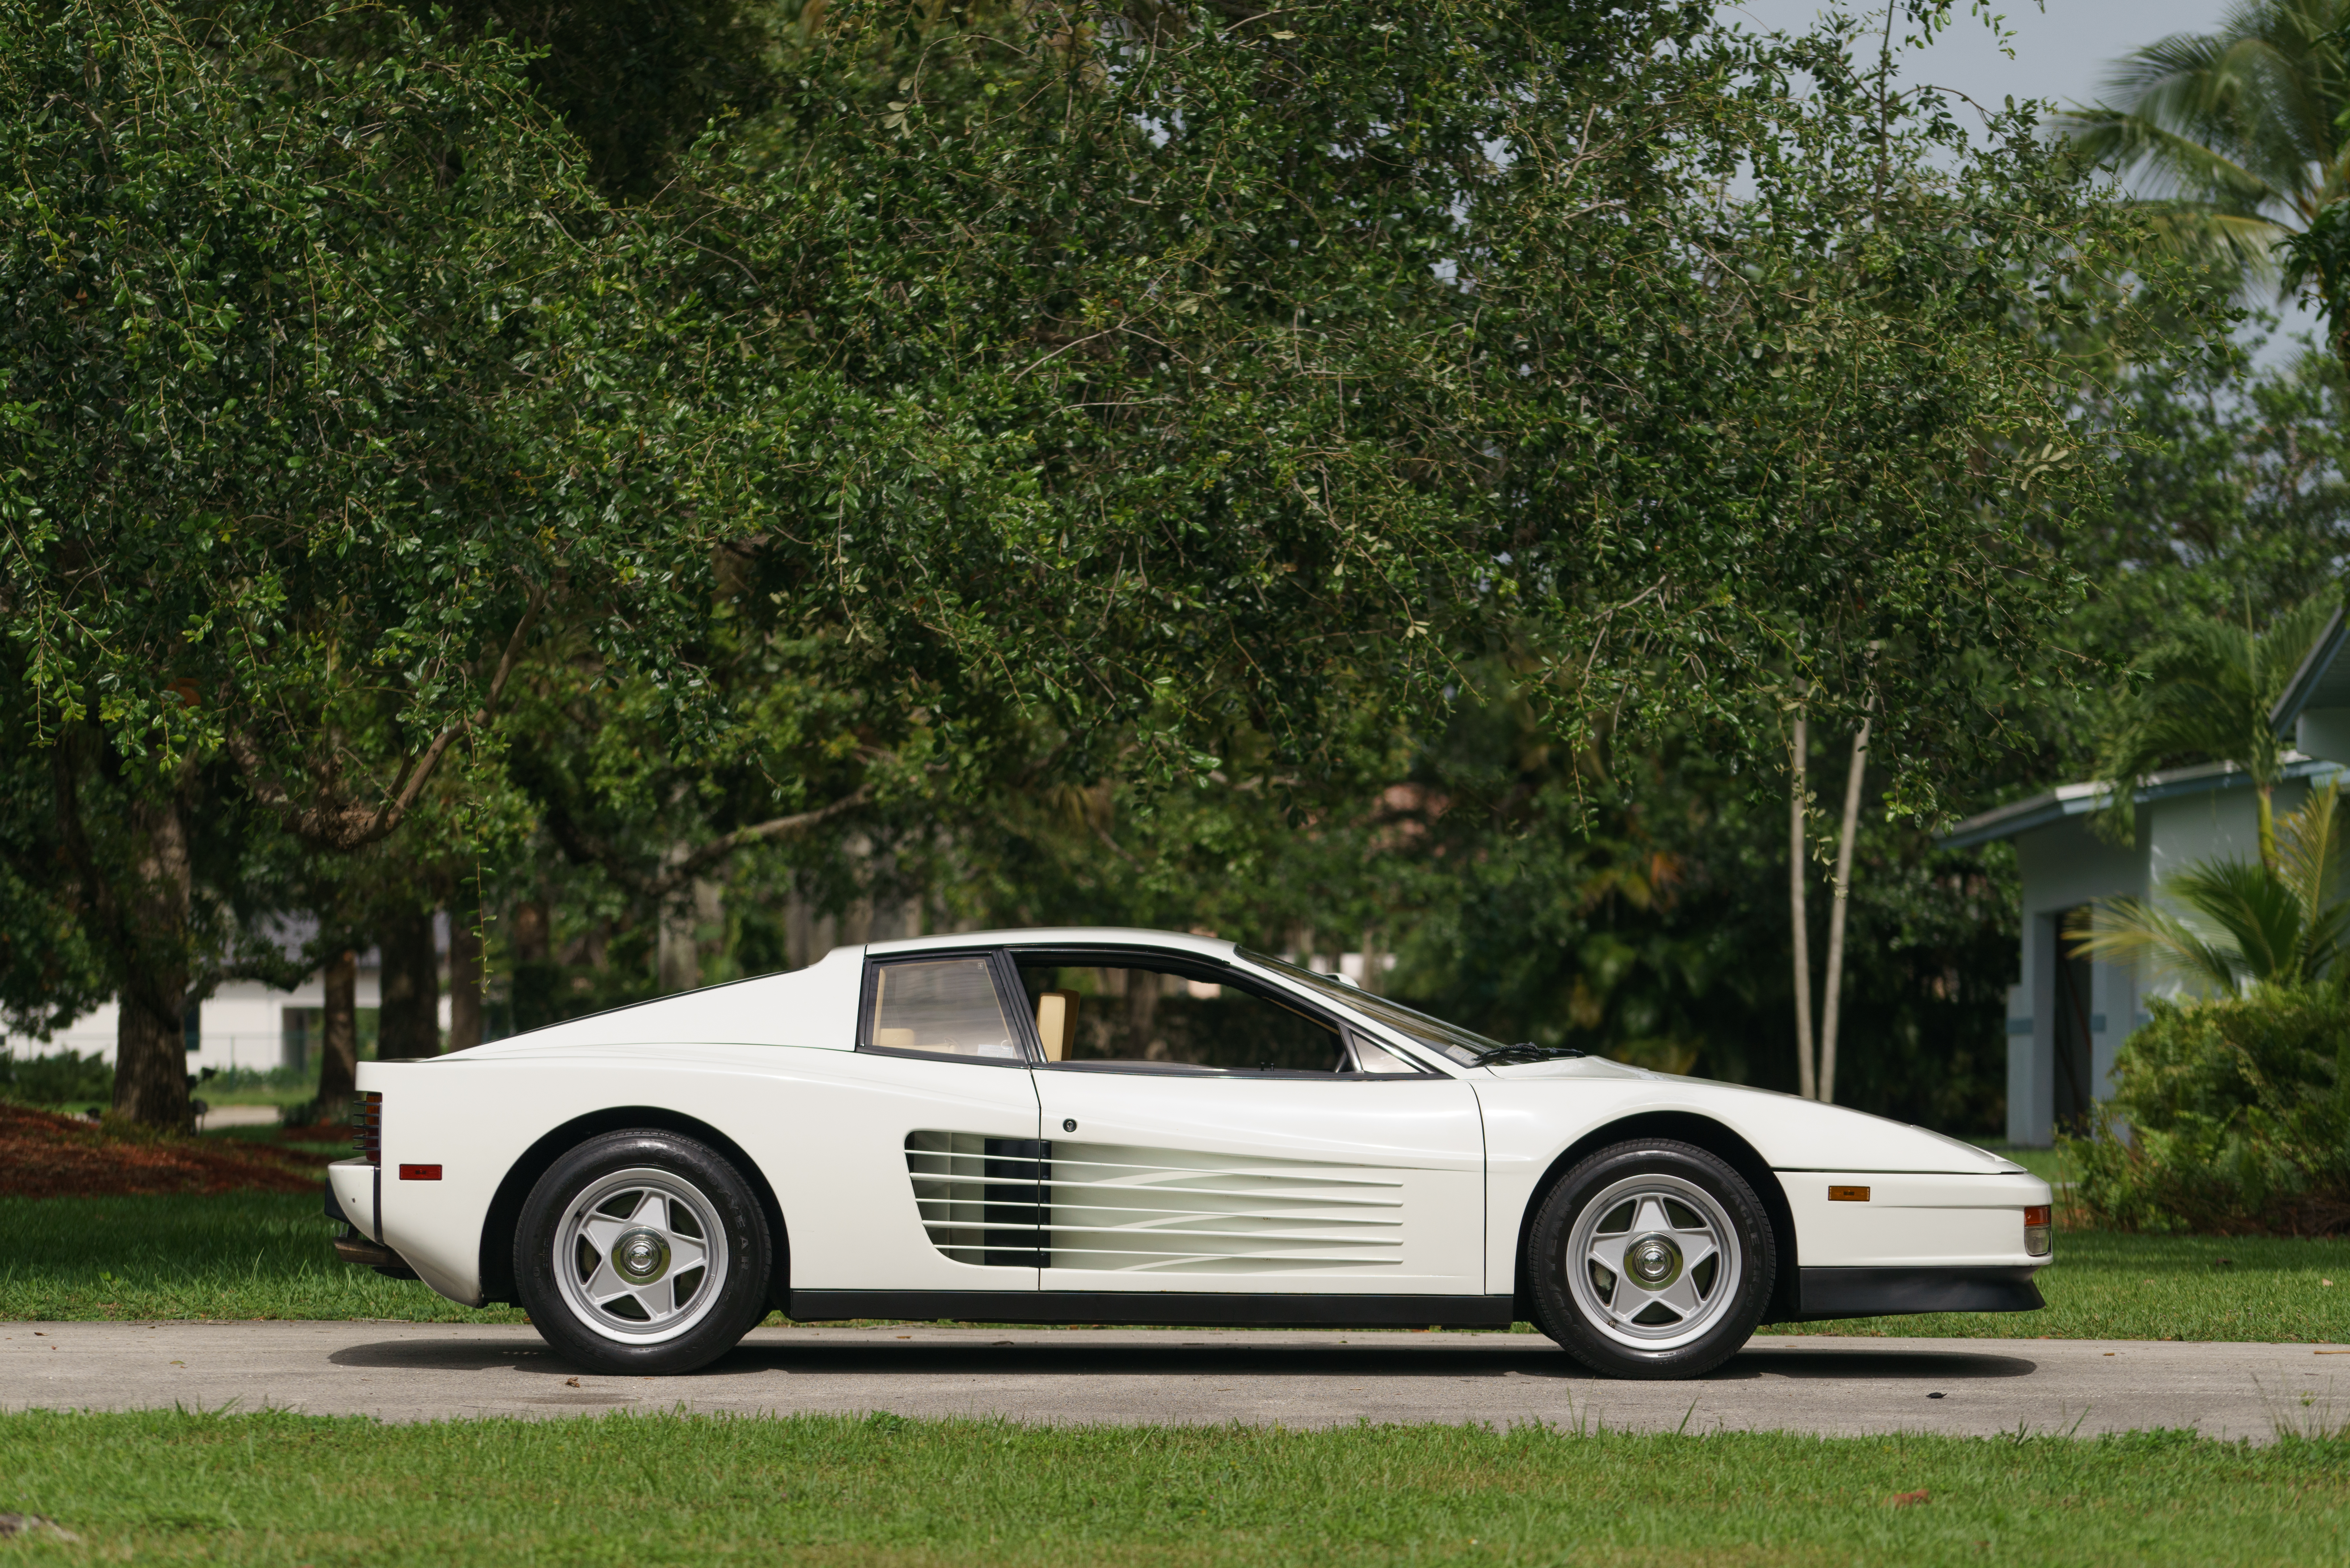 Miami Vice\' Ferrari ready for big score at Mecum Auctions event Aug. 15